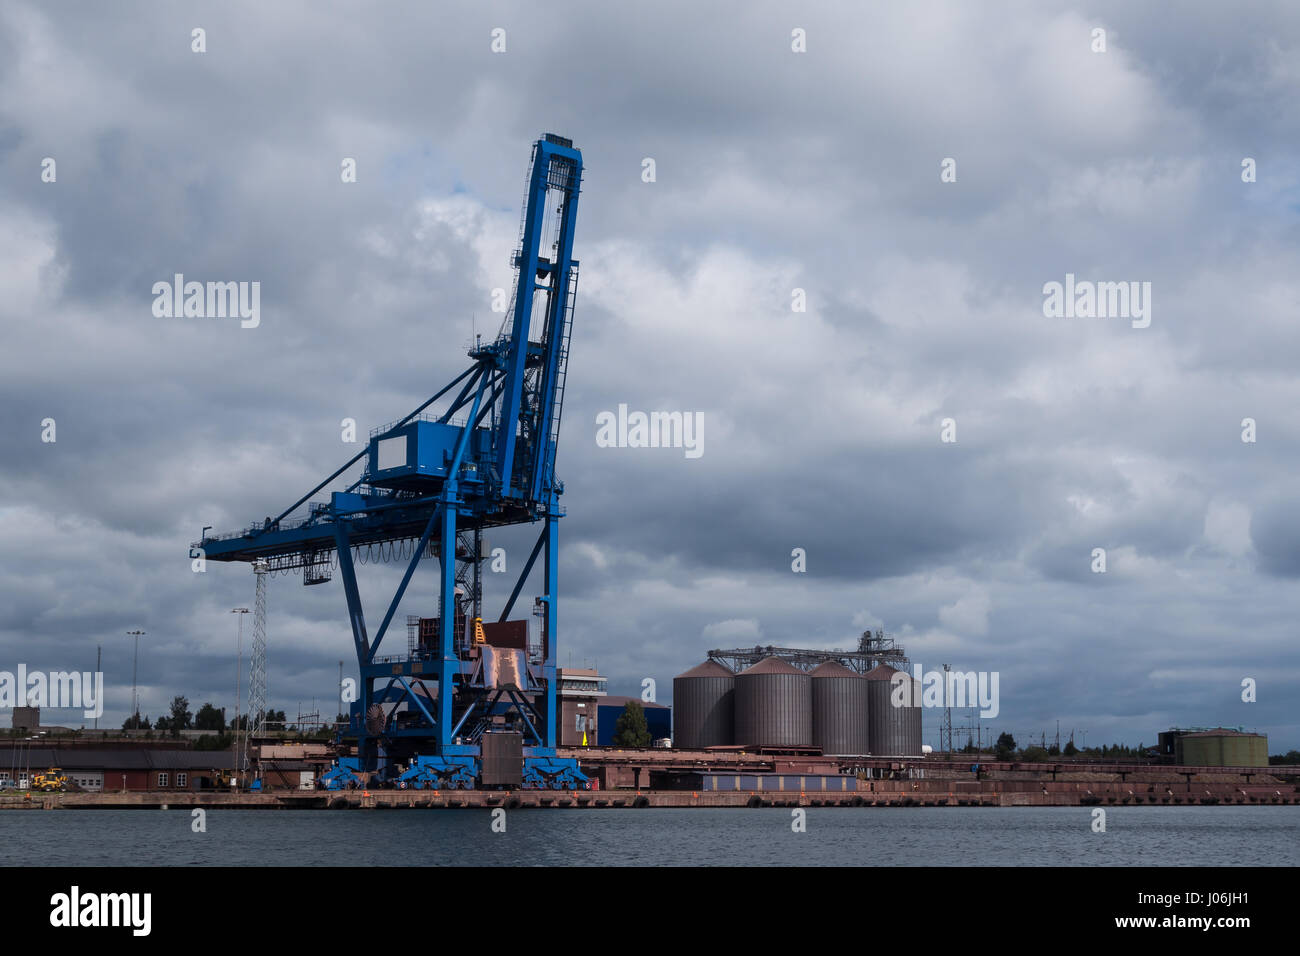 A crane and silos in an industrial harbour by the sea standing idle. - Stock Image